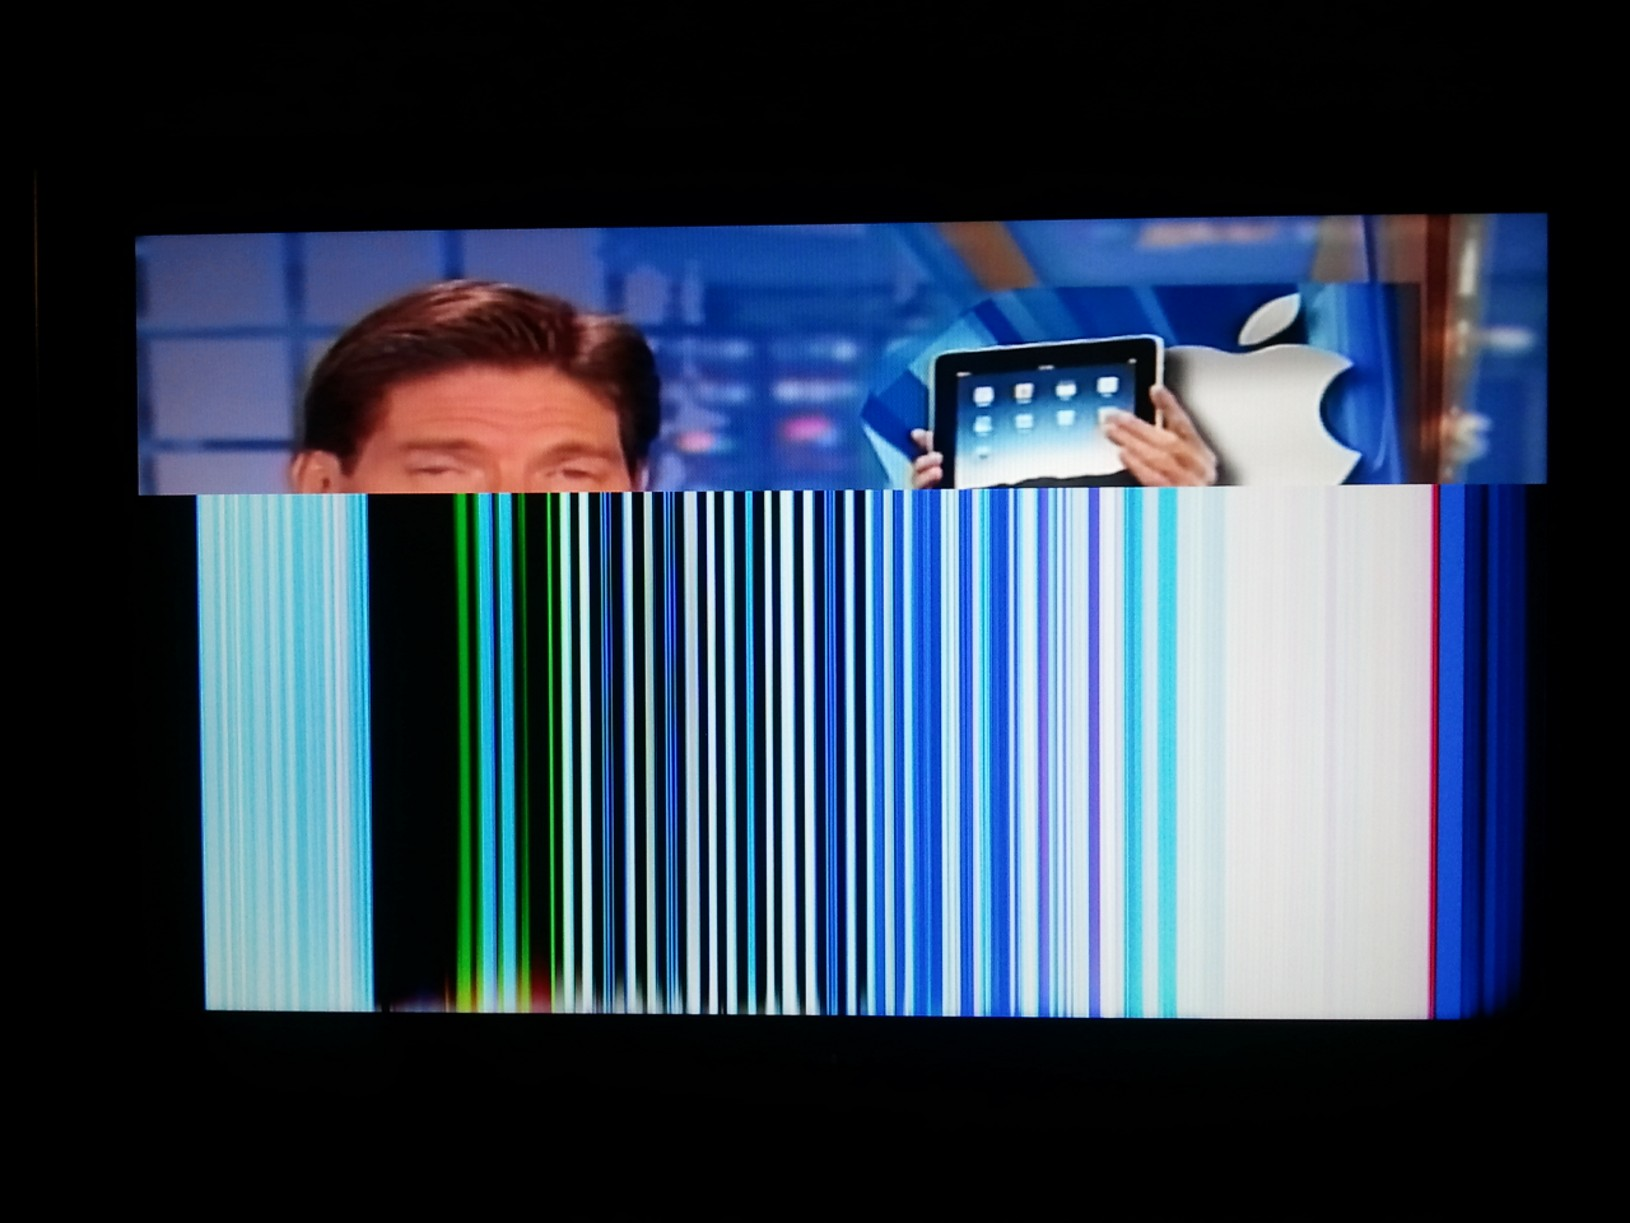 My tv is not working